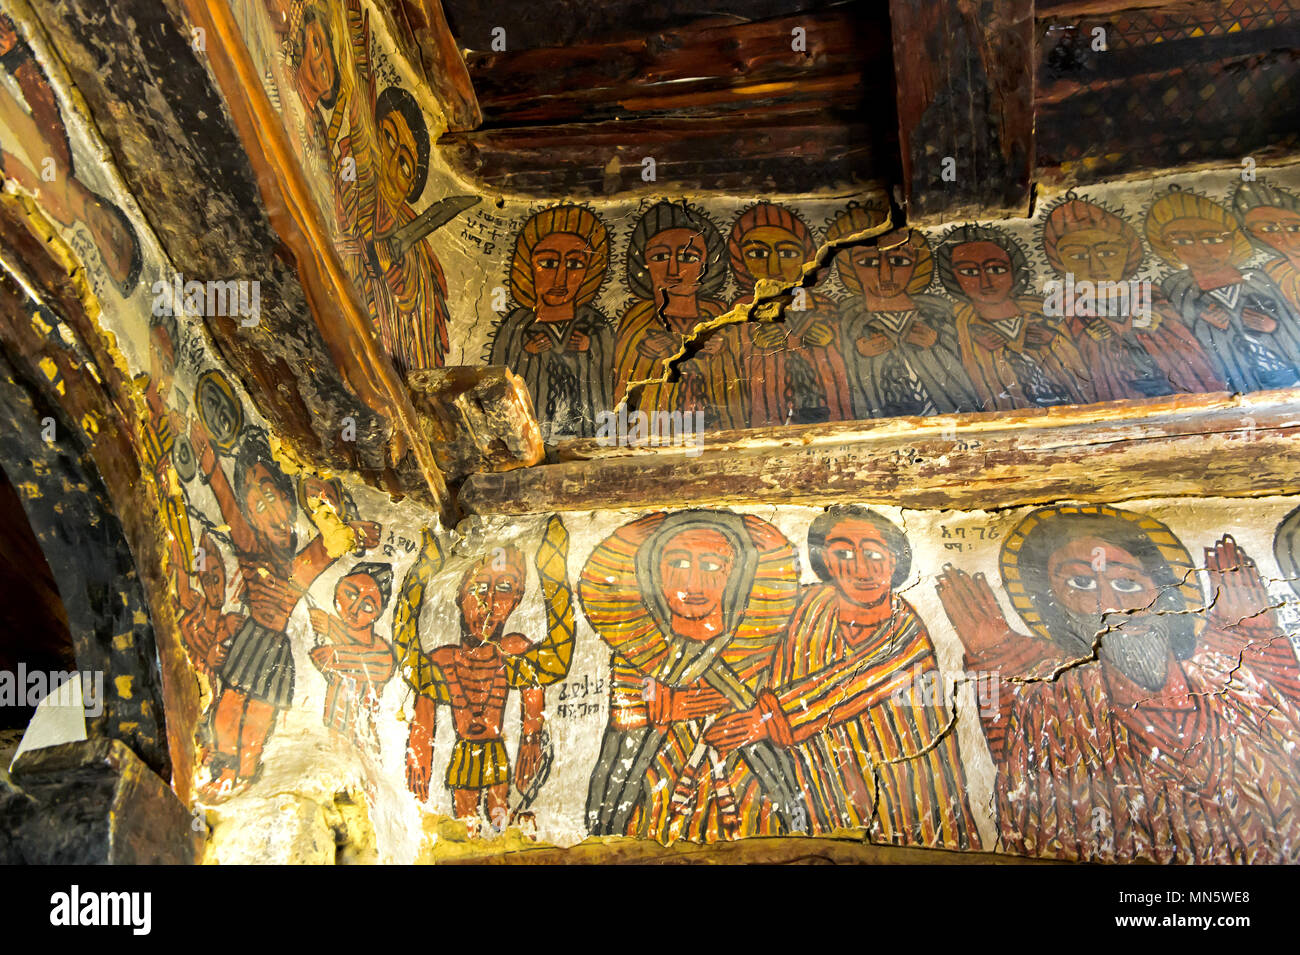 Biblical scenes: top: Elders of the Apocalypse, bottom: Mary and apostel John at the crucifixion, rock-hewn church Petros and Paulus, Tigray, Ethiopia - Stock Image